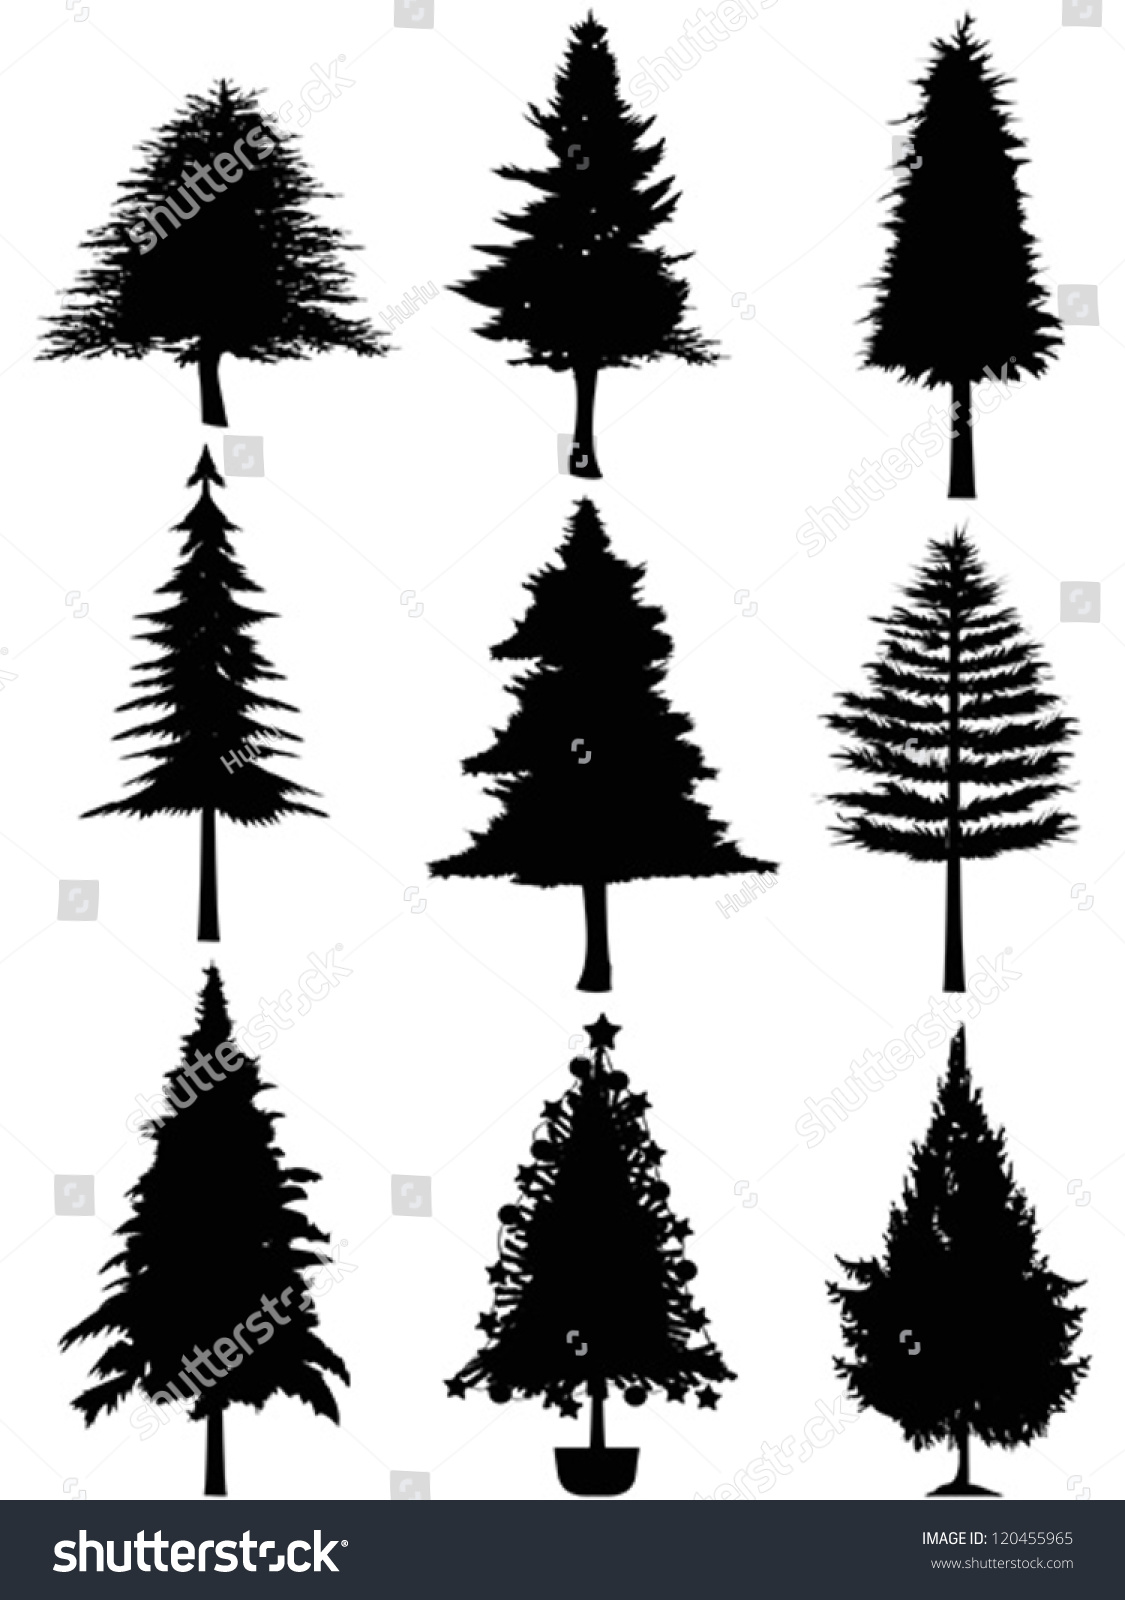 Pine Tree Outline Vector pine tree stock vectors & vector clip art ...